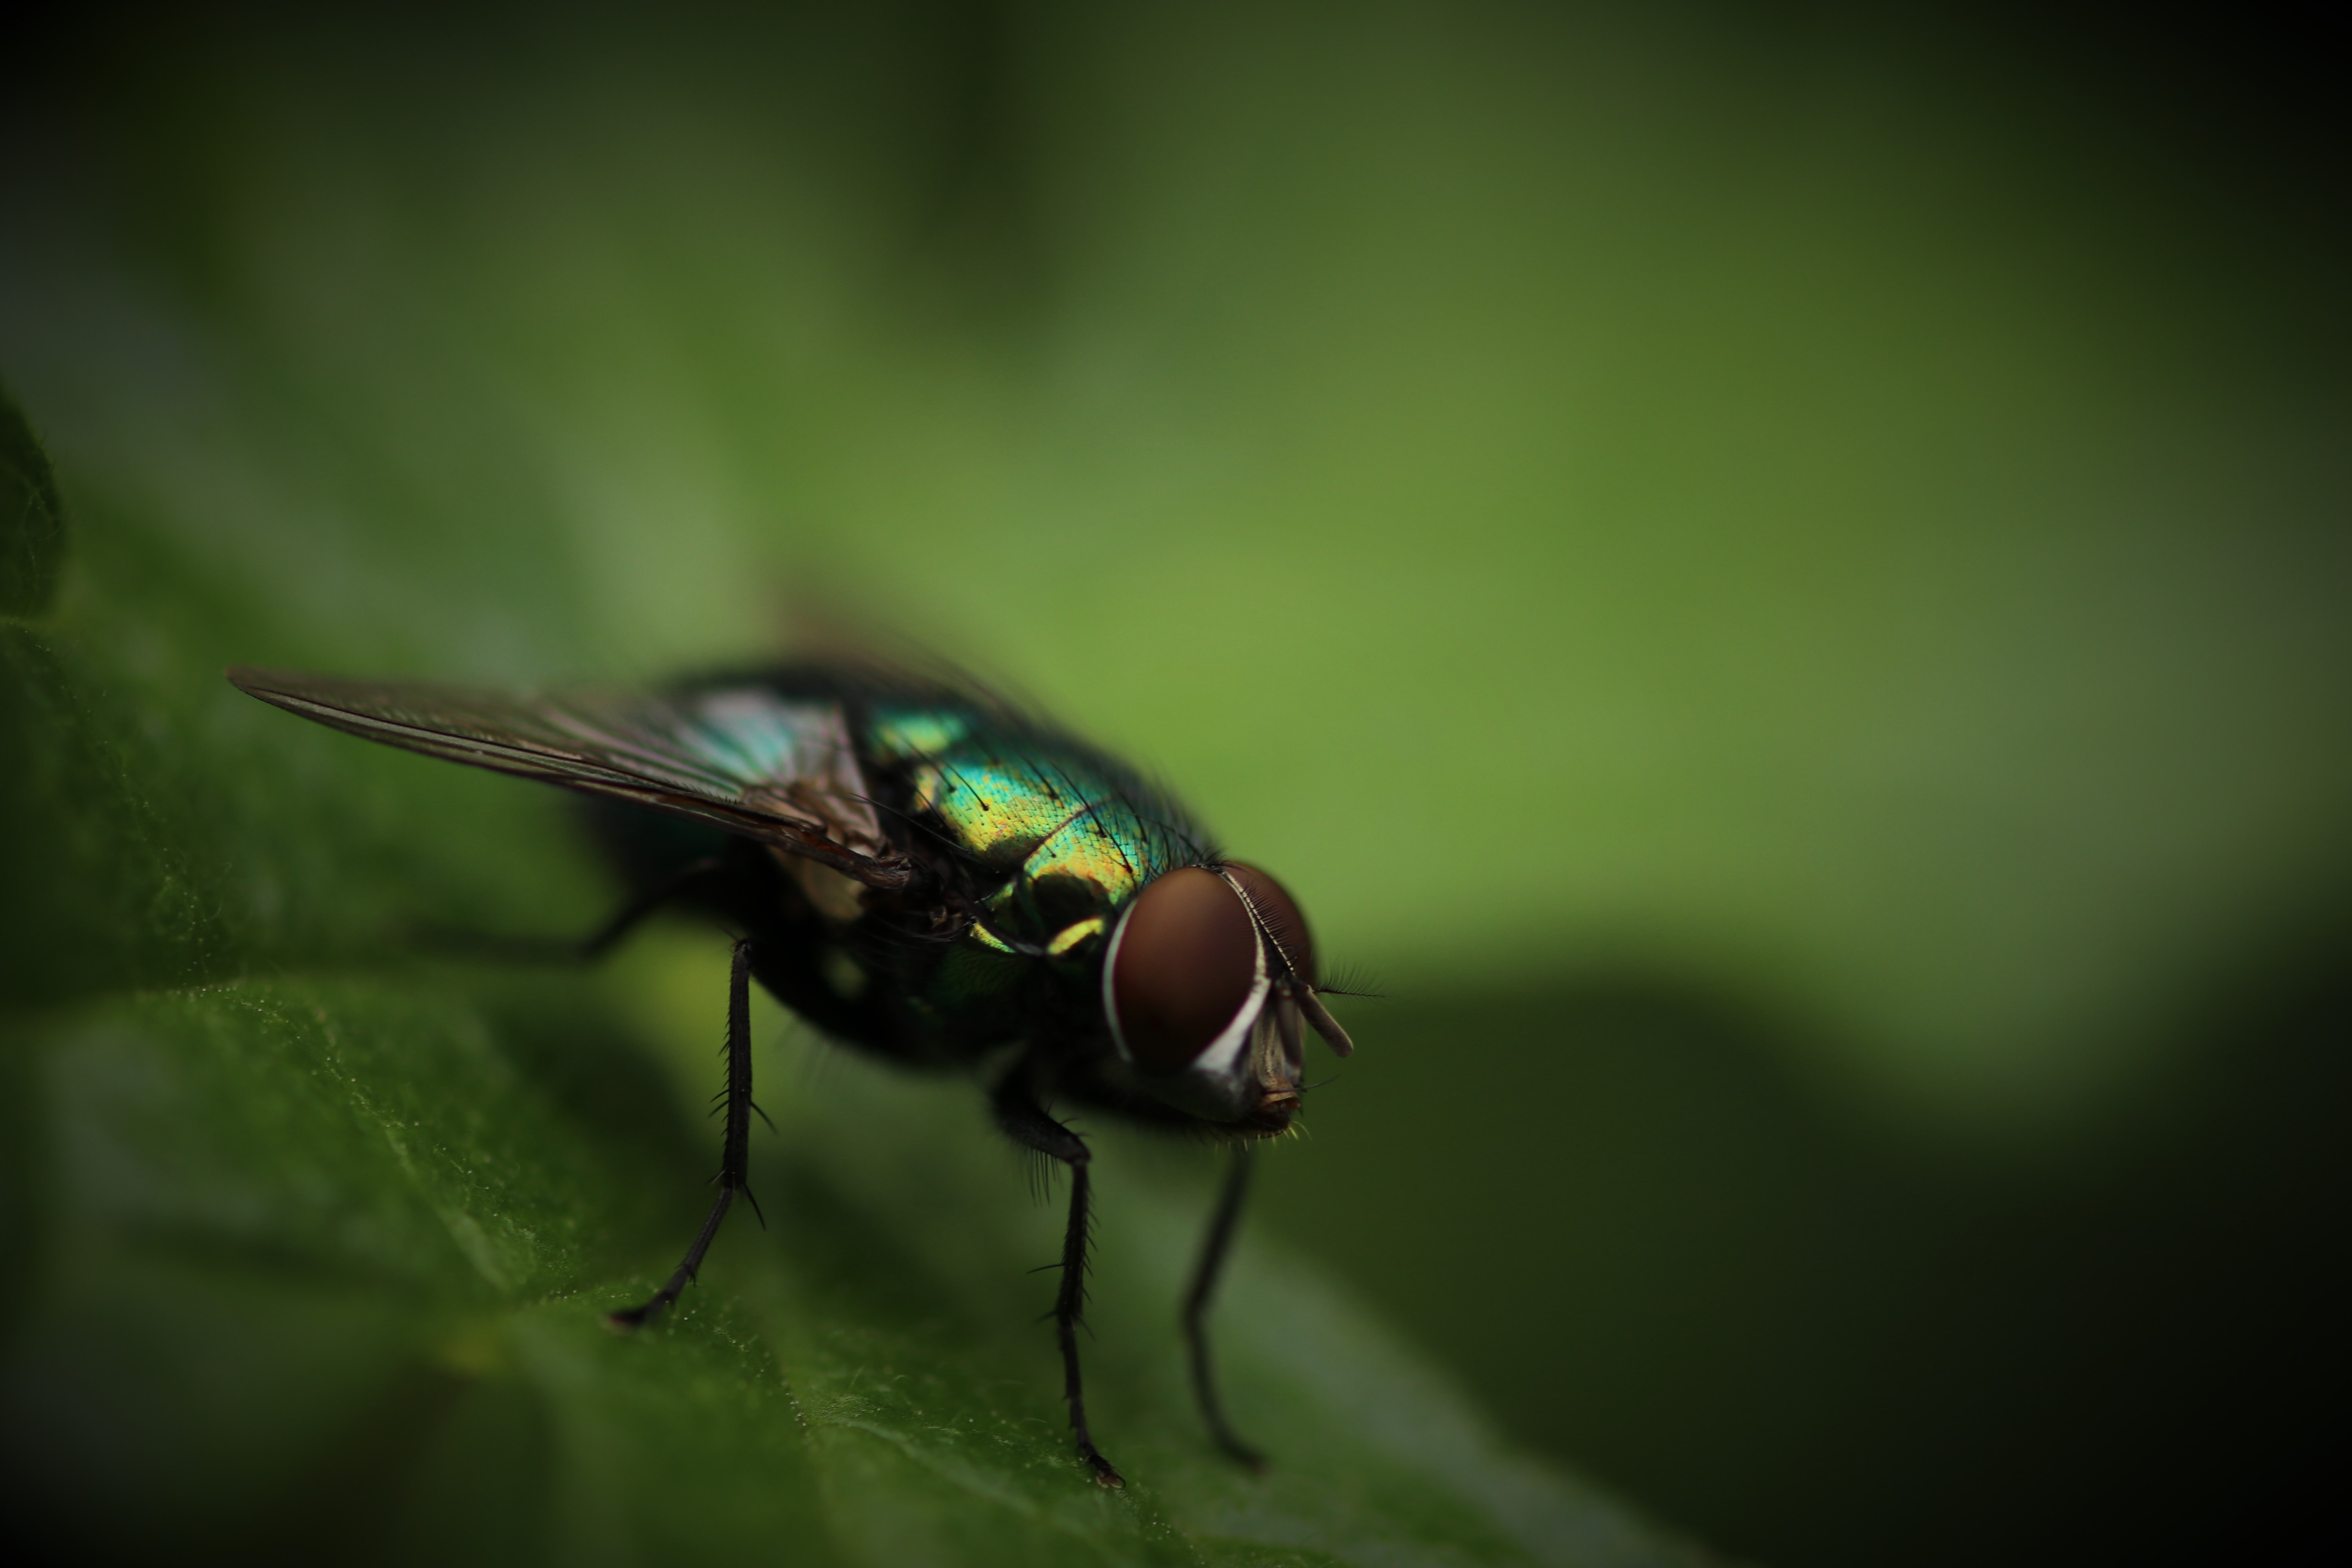 A macro shot of a fly sitting on a leaf